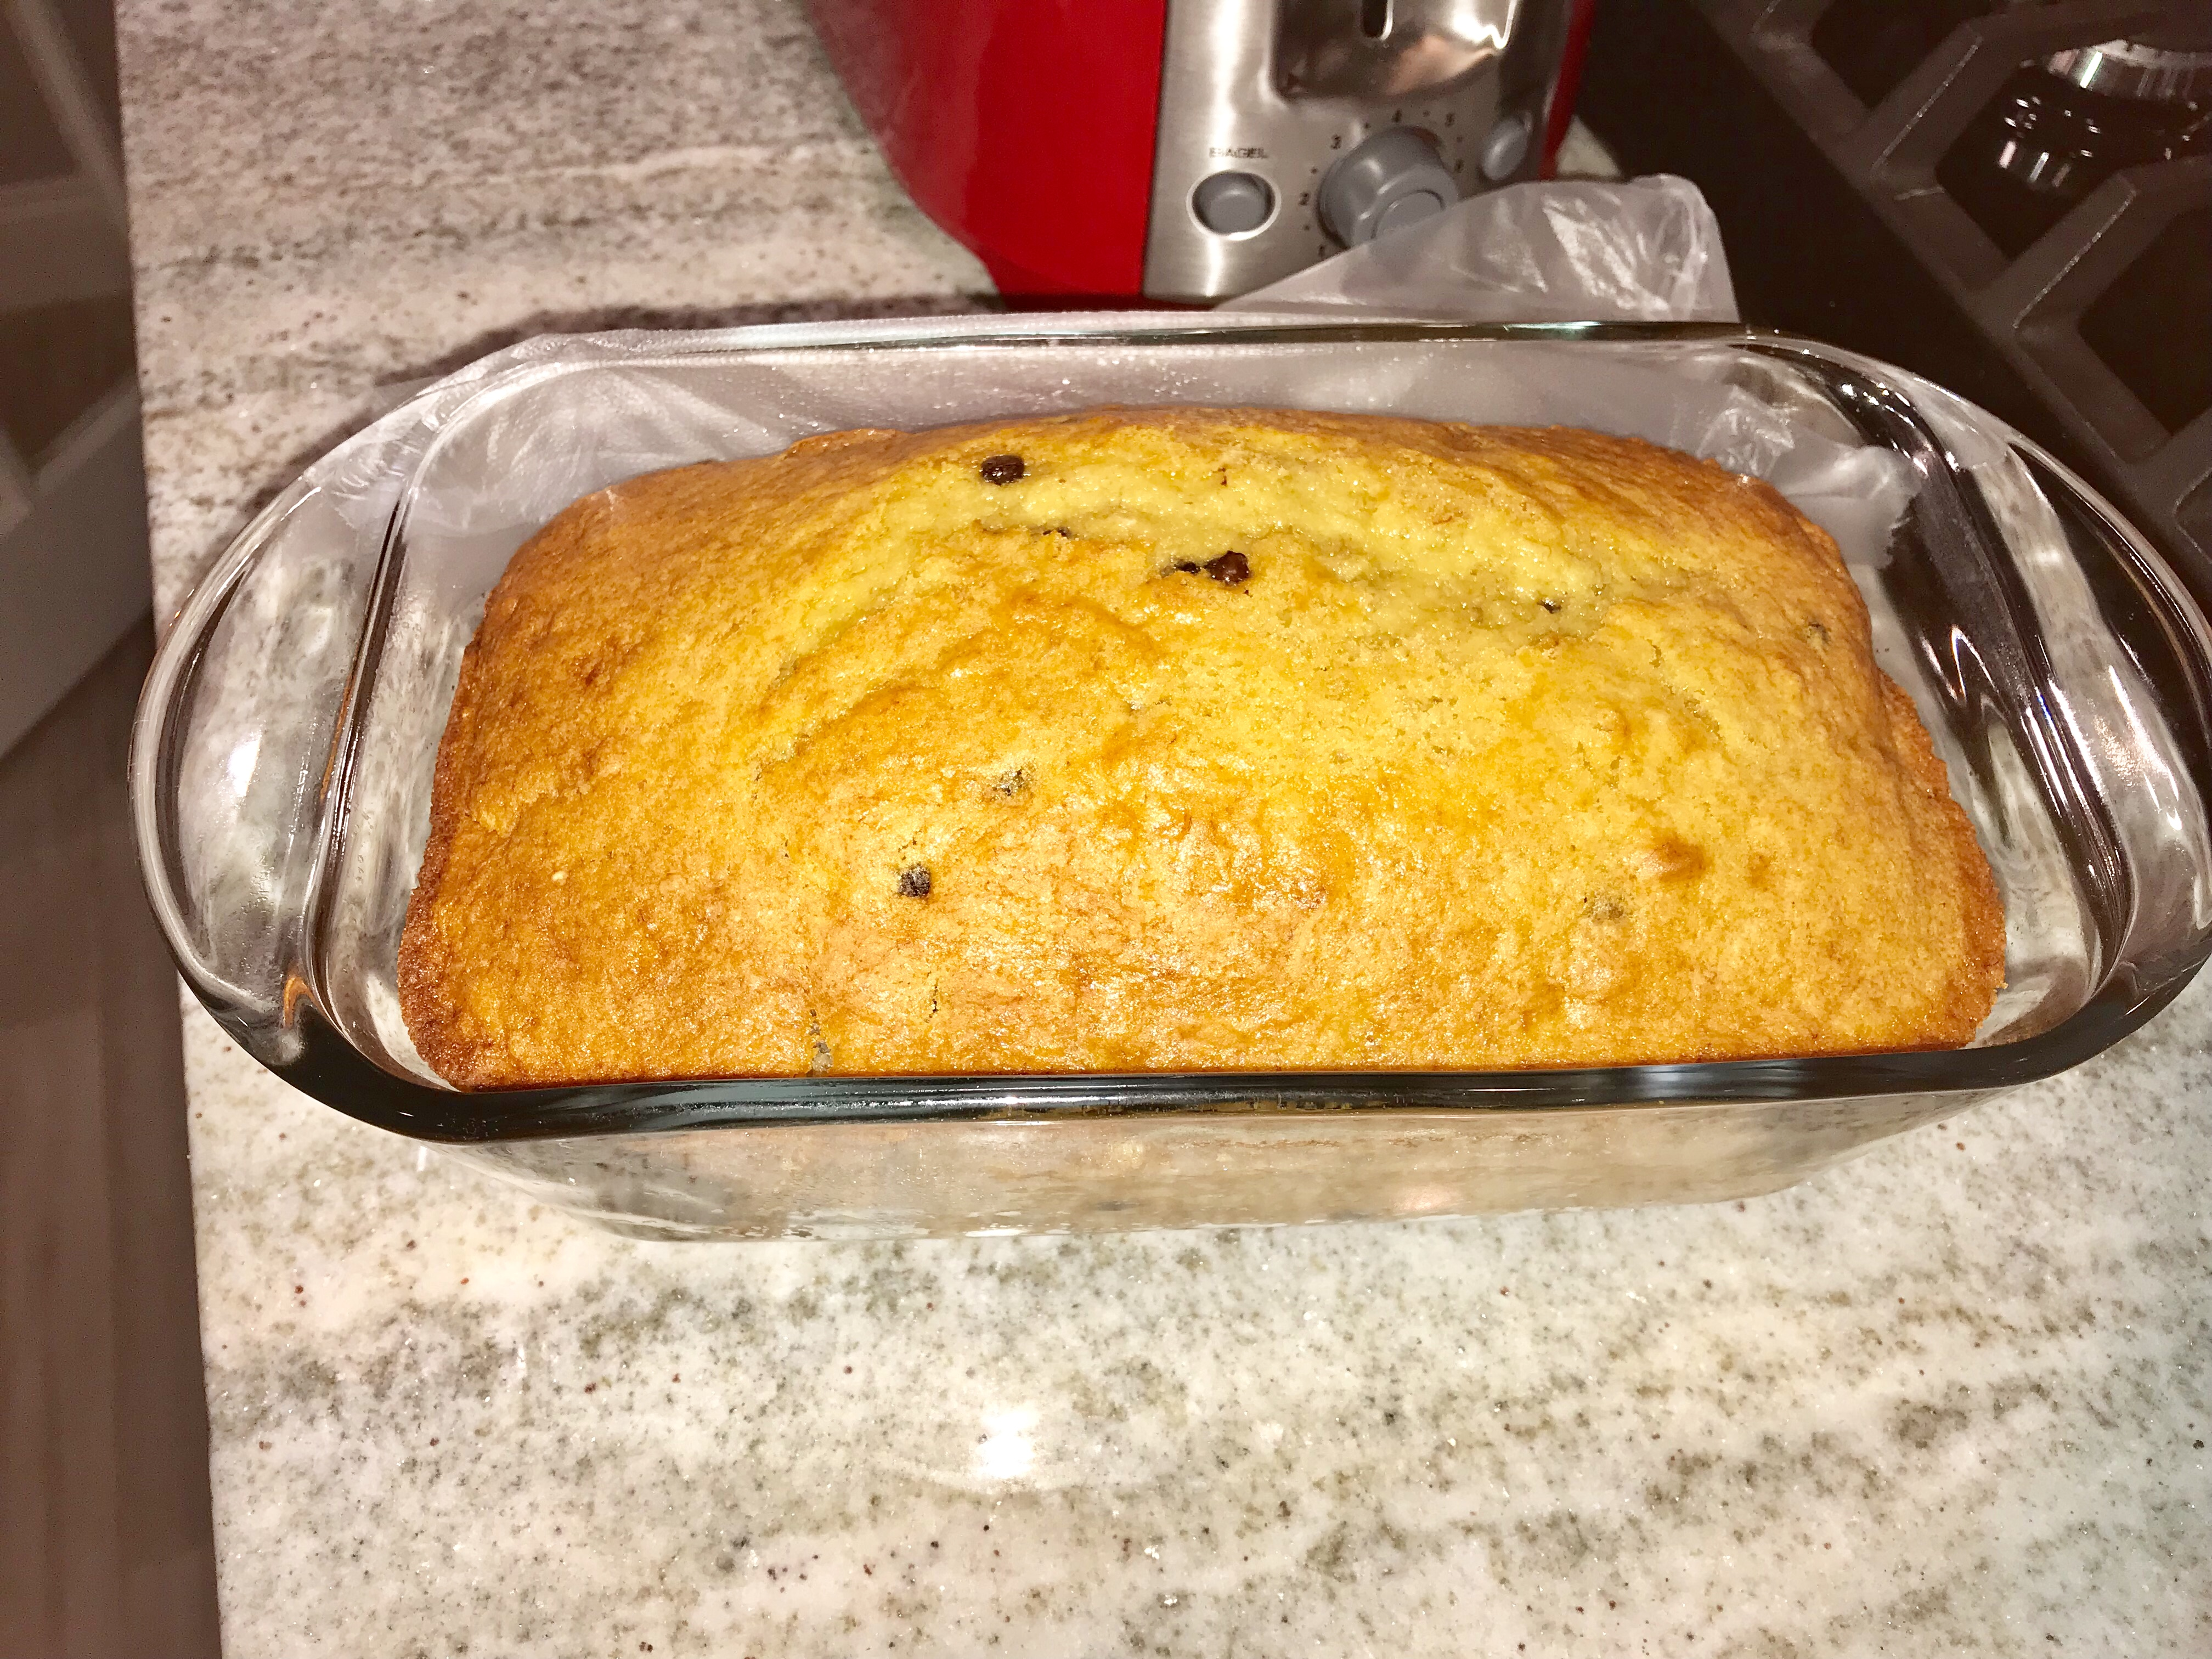 Weight Watchers Chocolate Chip Banana Loaf recipe serves 14 and is just six points per serving